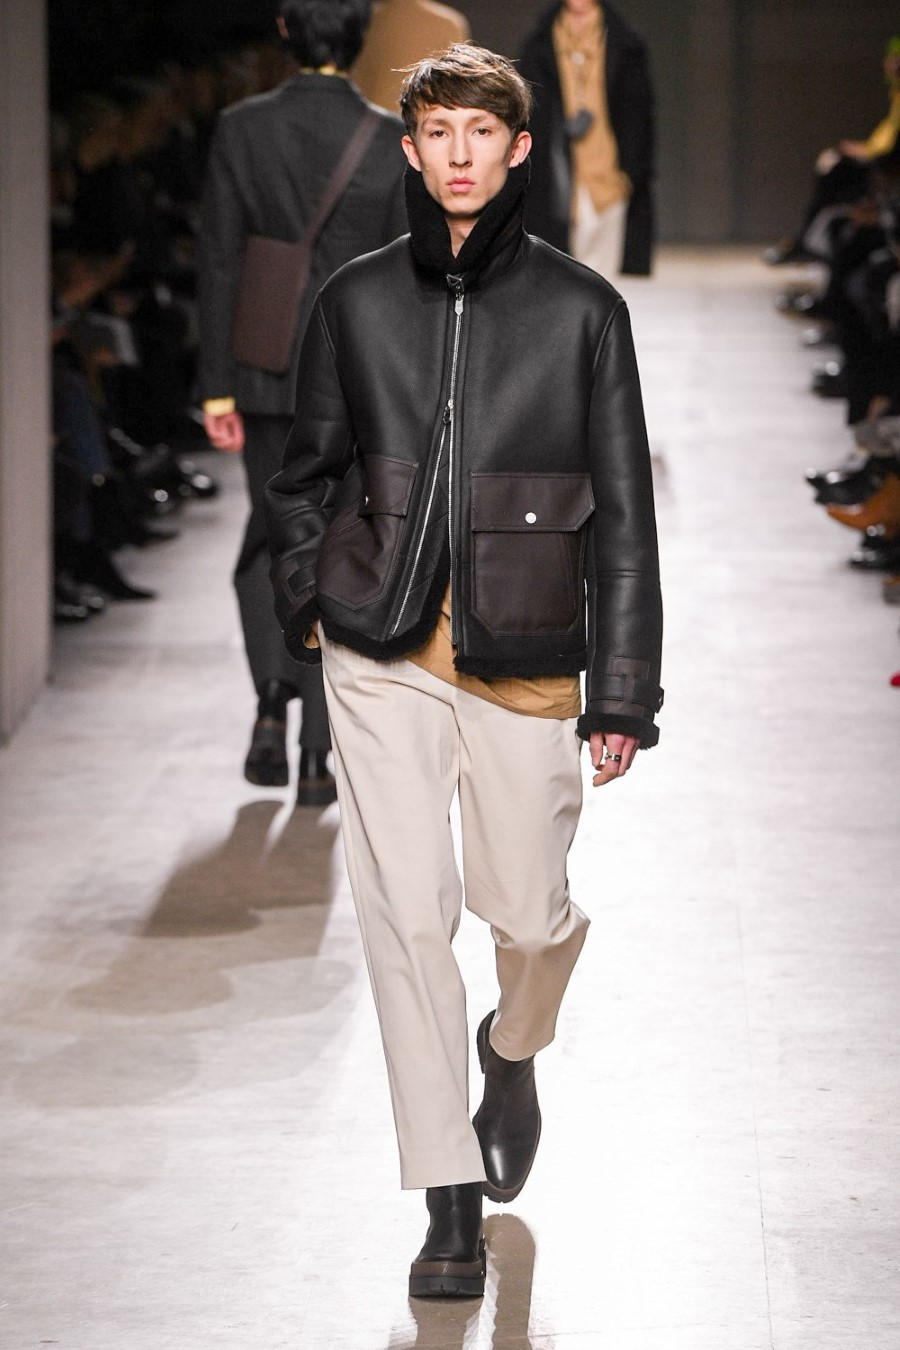 Hermès - Fall Winter 2020 - Paris Fashion Week Men's